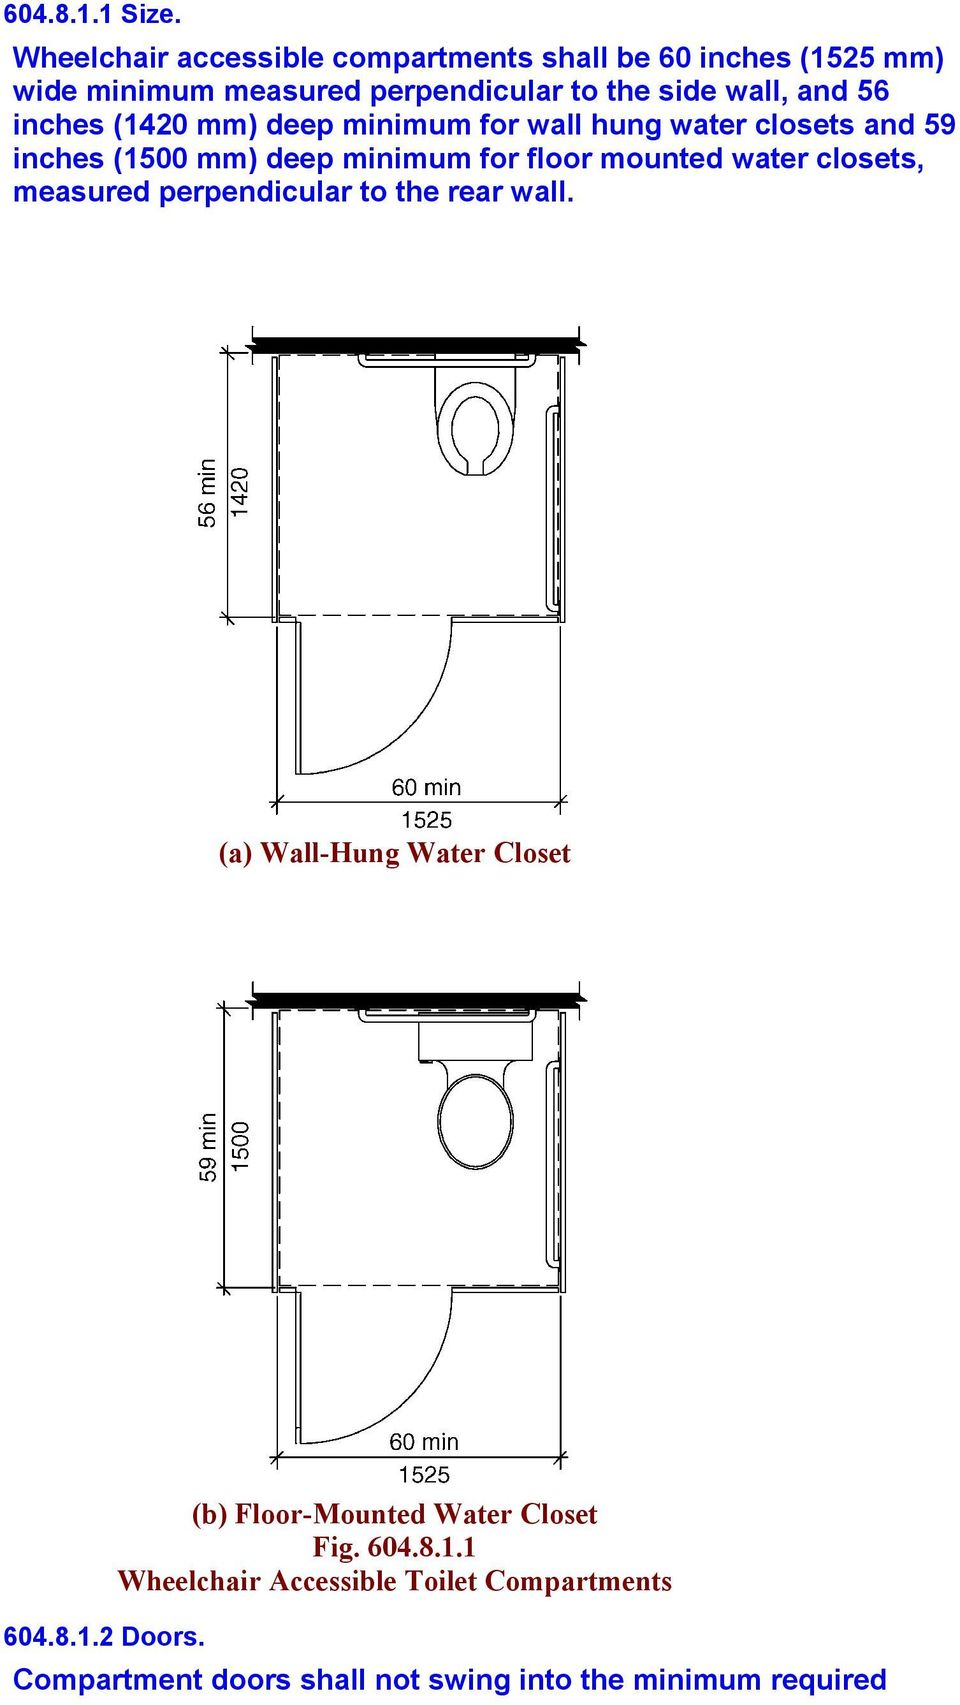 inches (1420 mm) deep minimum for wall hung water closets and 59 inches (1500 mm) deep minimum for floor mounted water